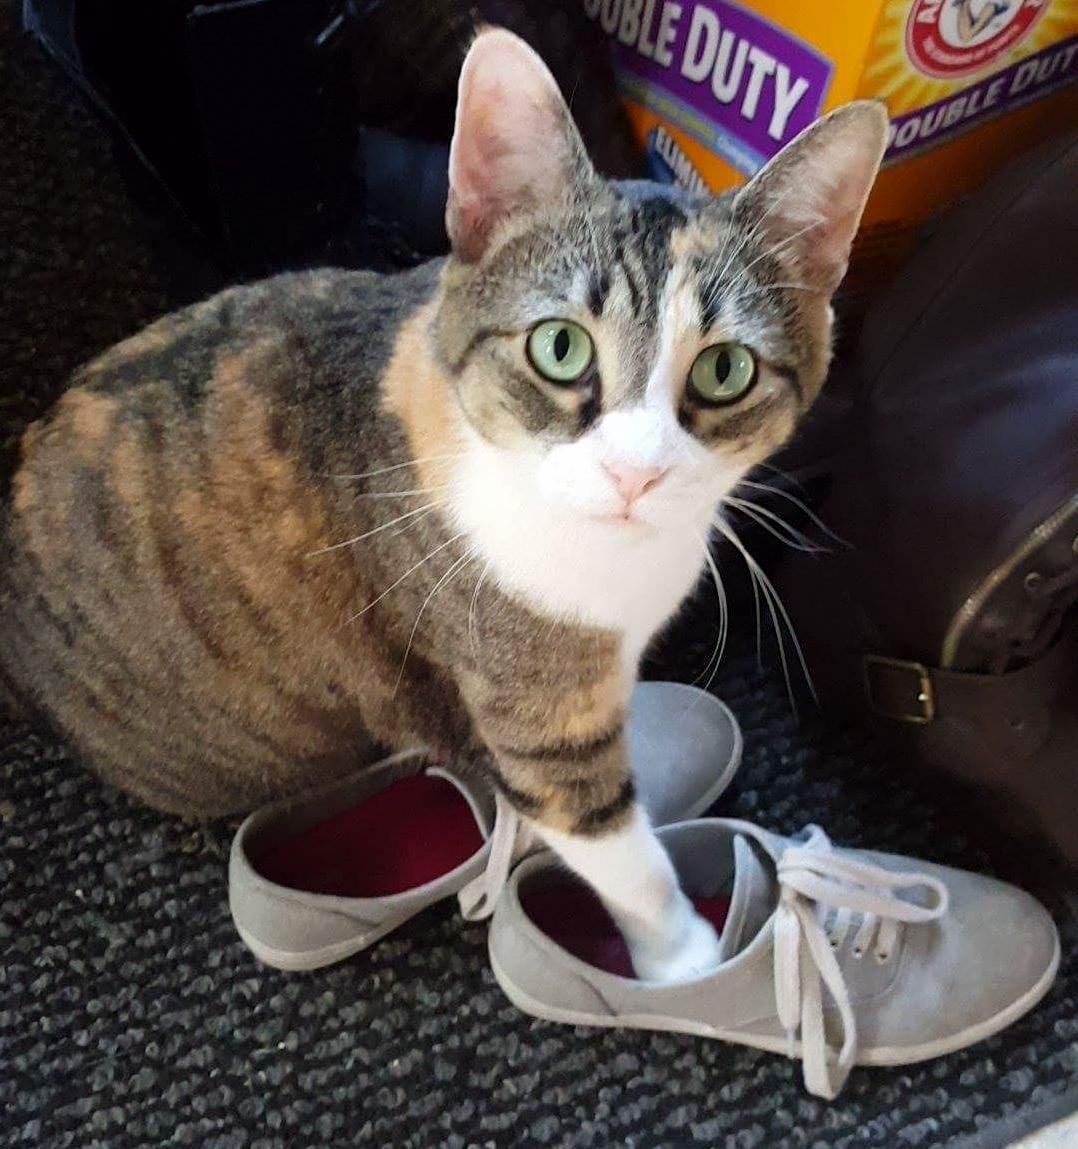 This is my shoe now